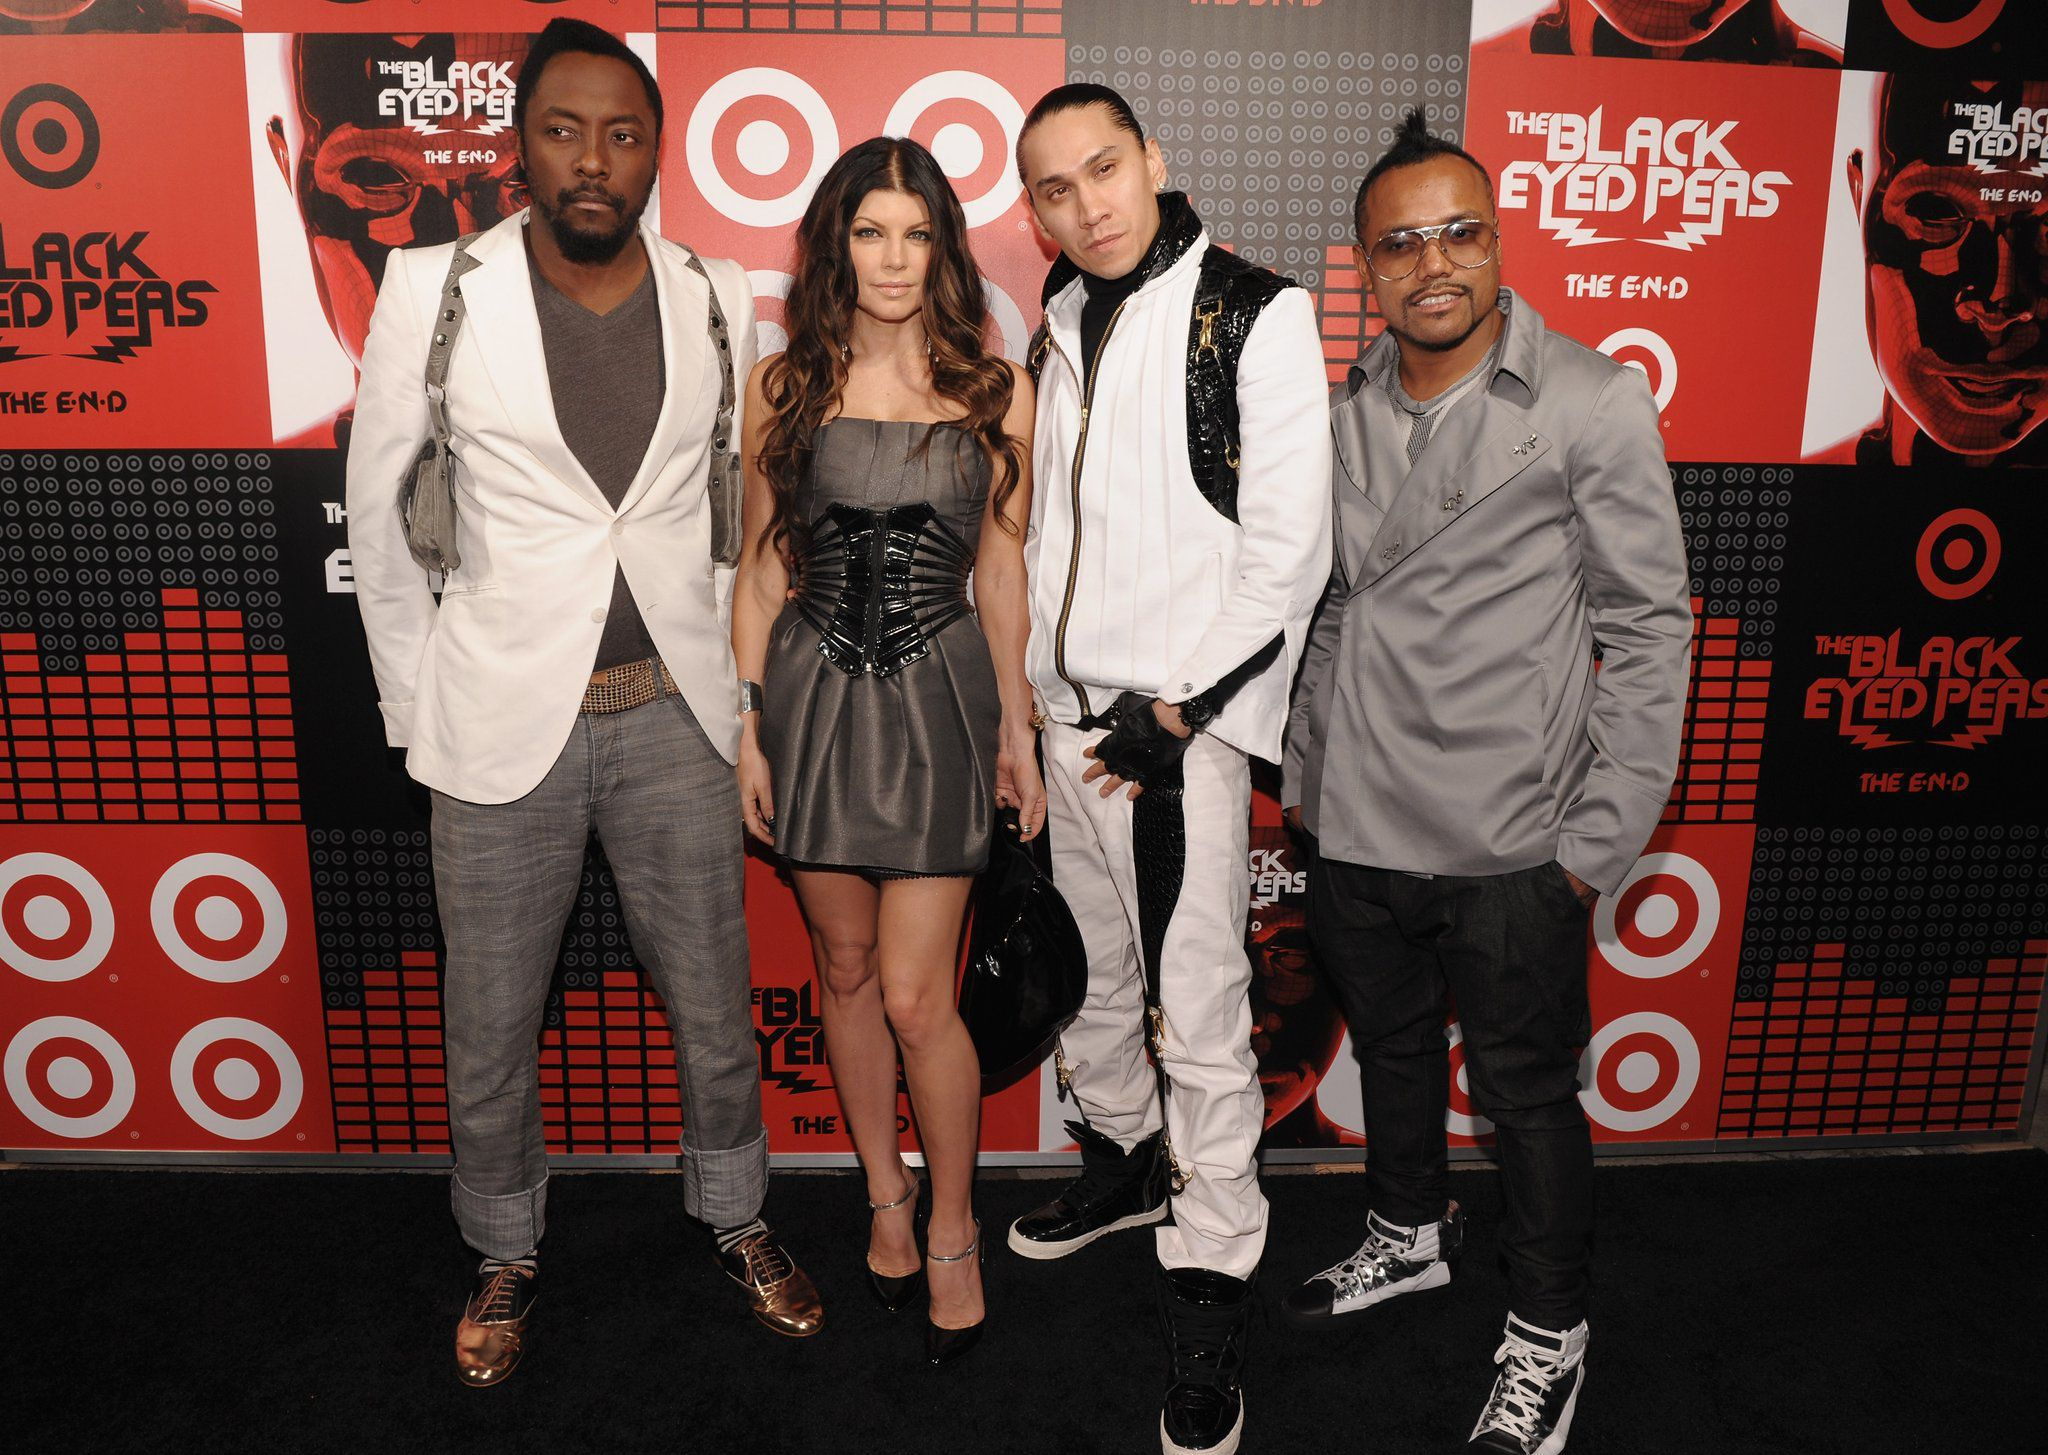 Black Eyed Peas High Quality Wallpapers